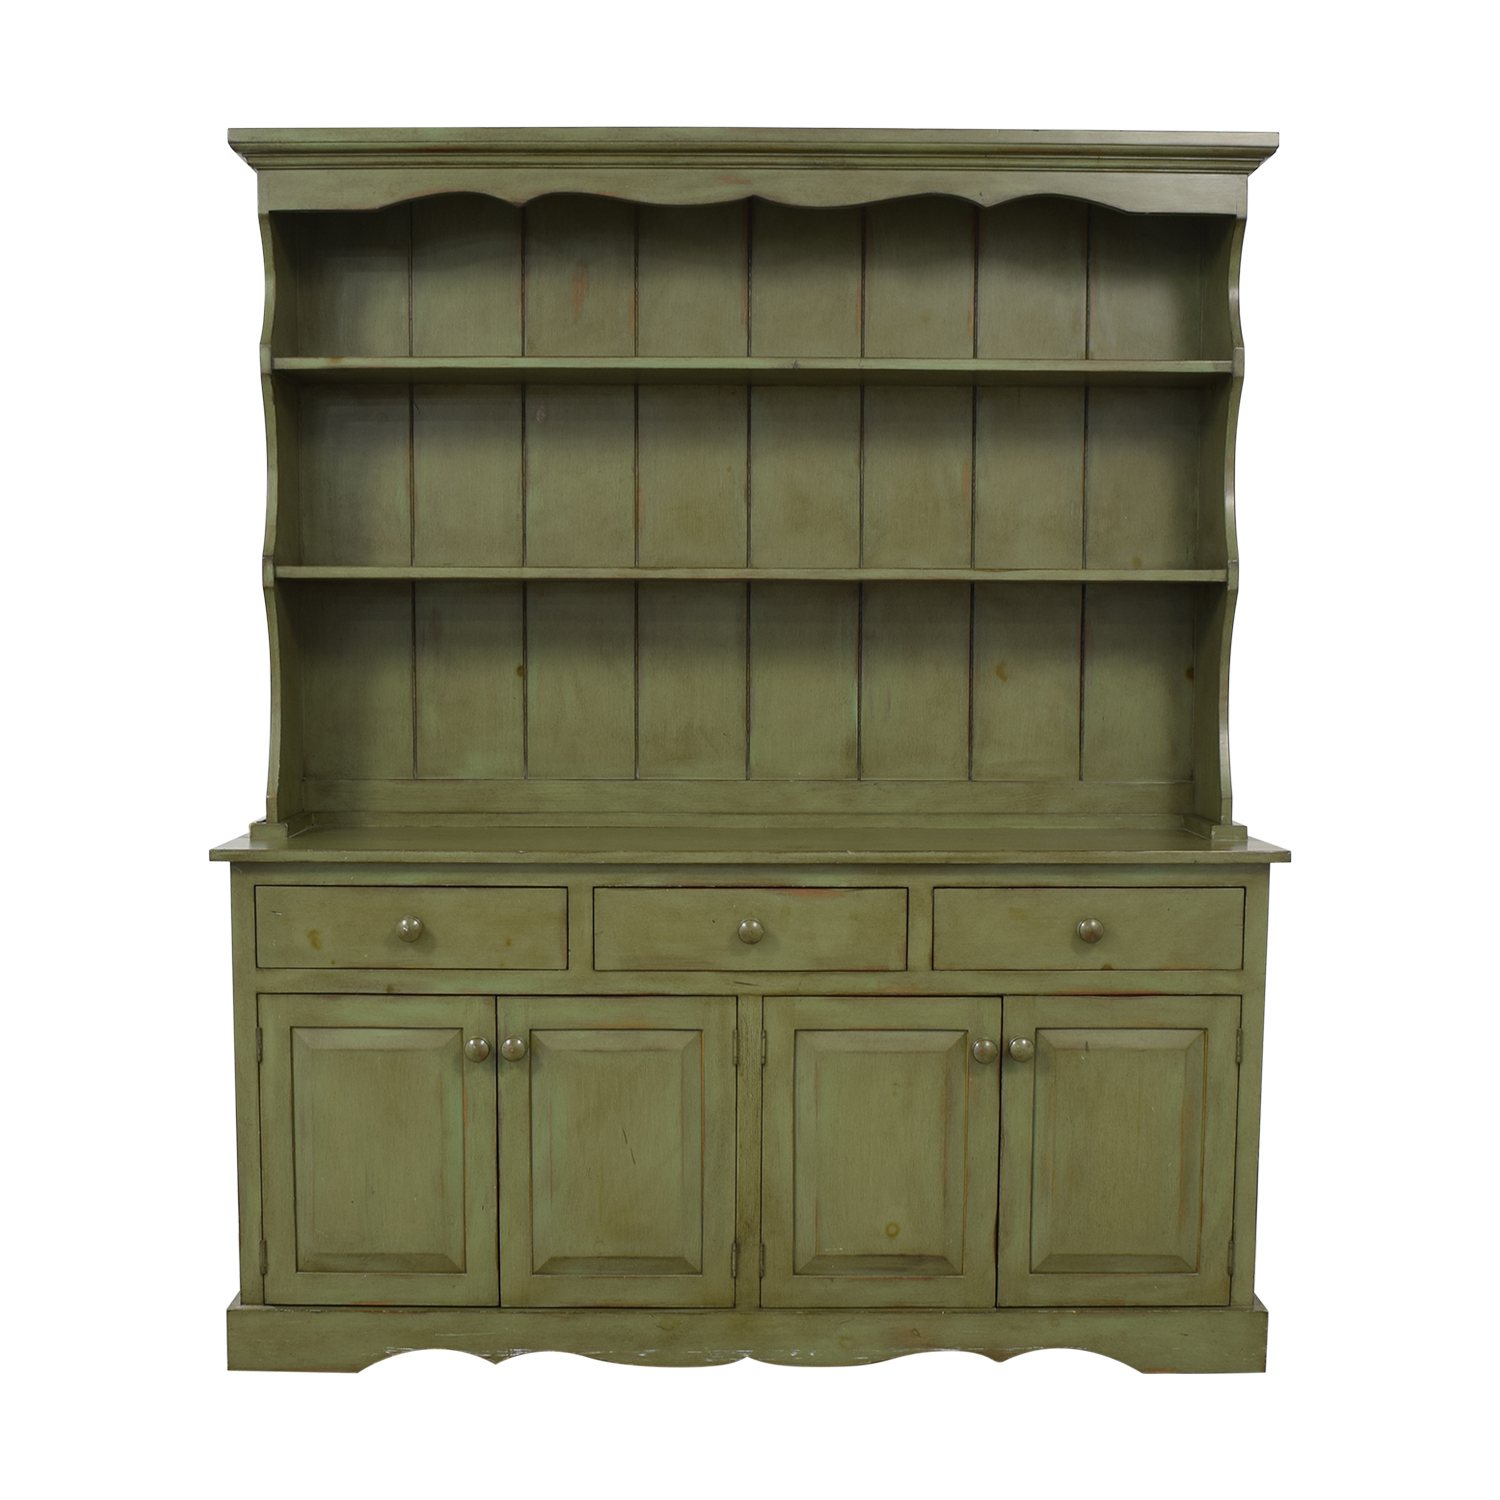 Ethan Allen Ethan Allen Cabinet and Hutch used